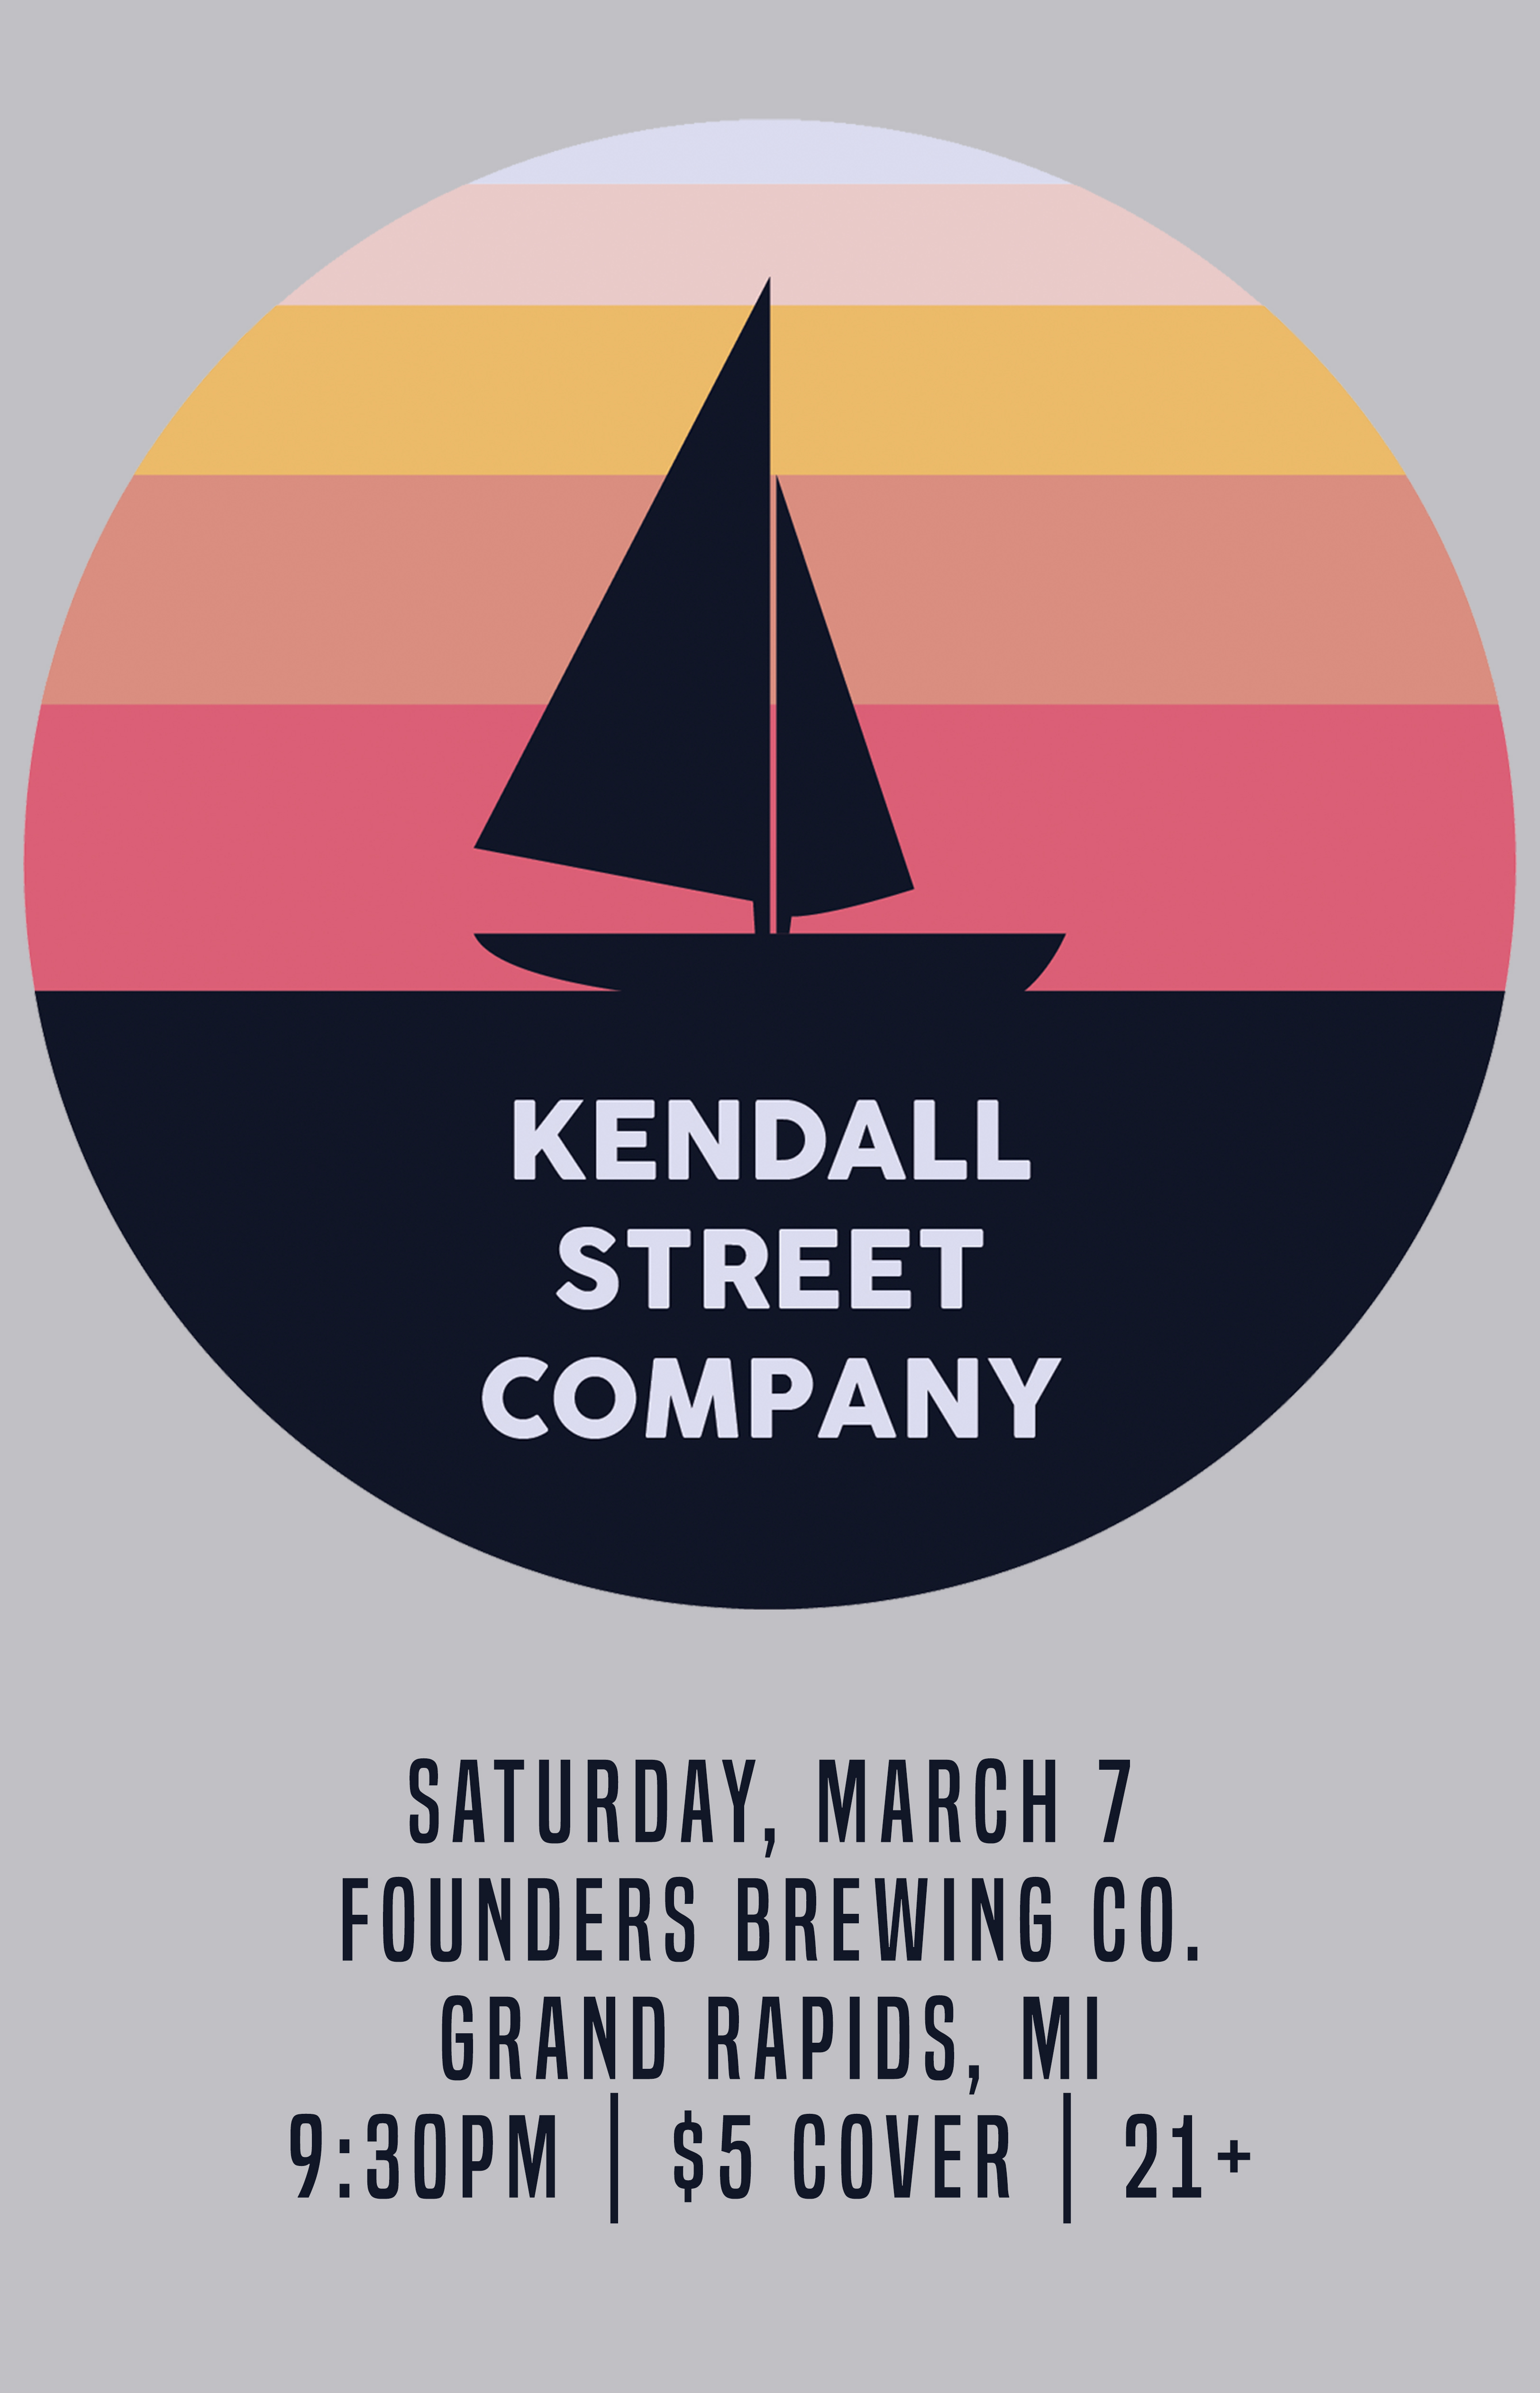 Kendall Street Company event poster hosted by Founders Brewing Co.